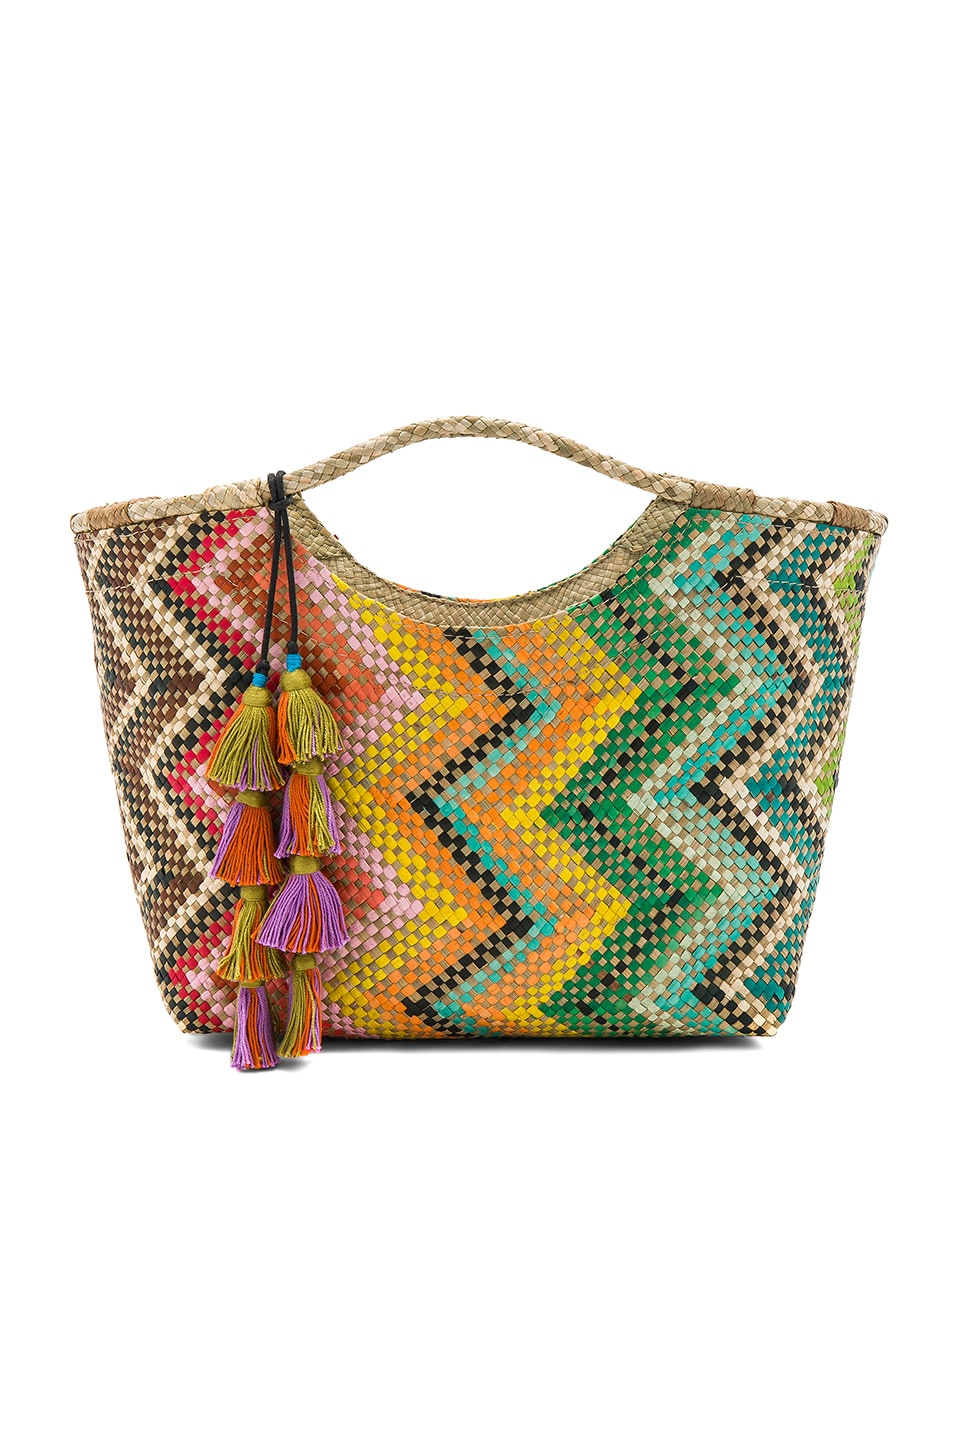 Banago Liliana Mini Tote in Rainbow